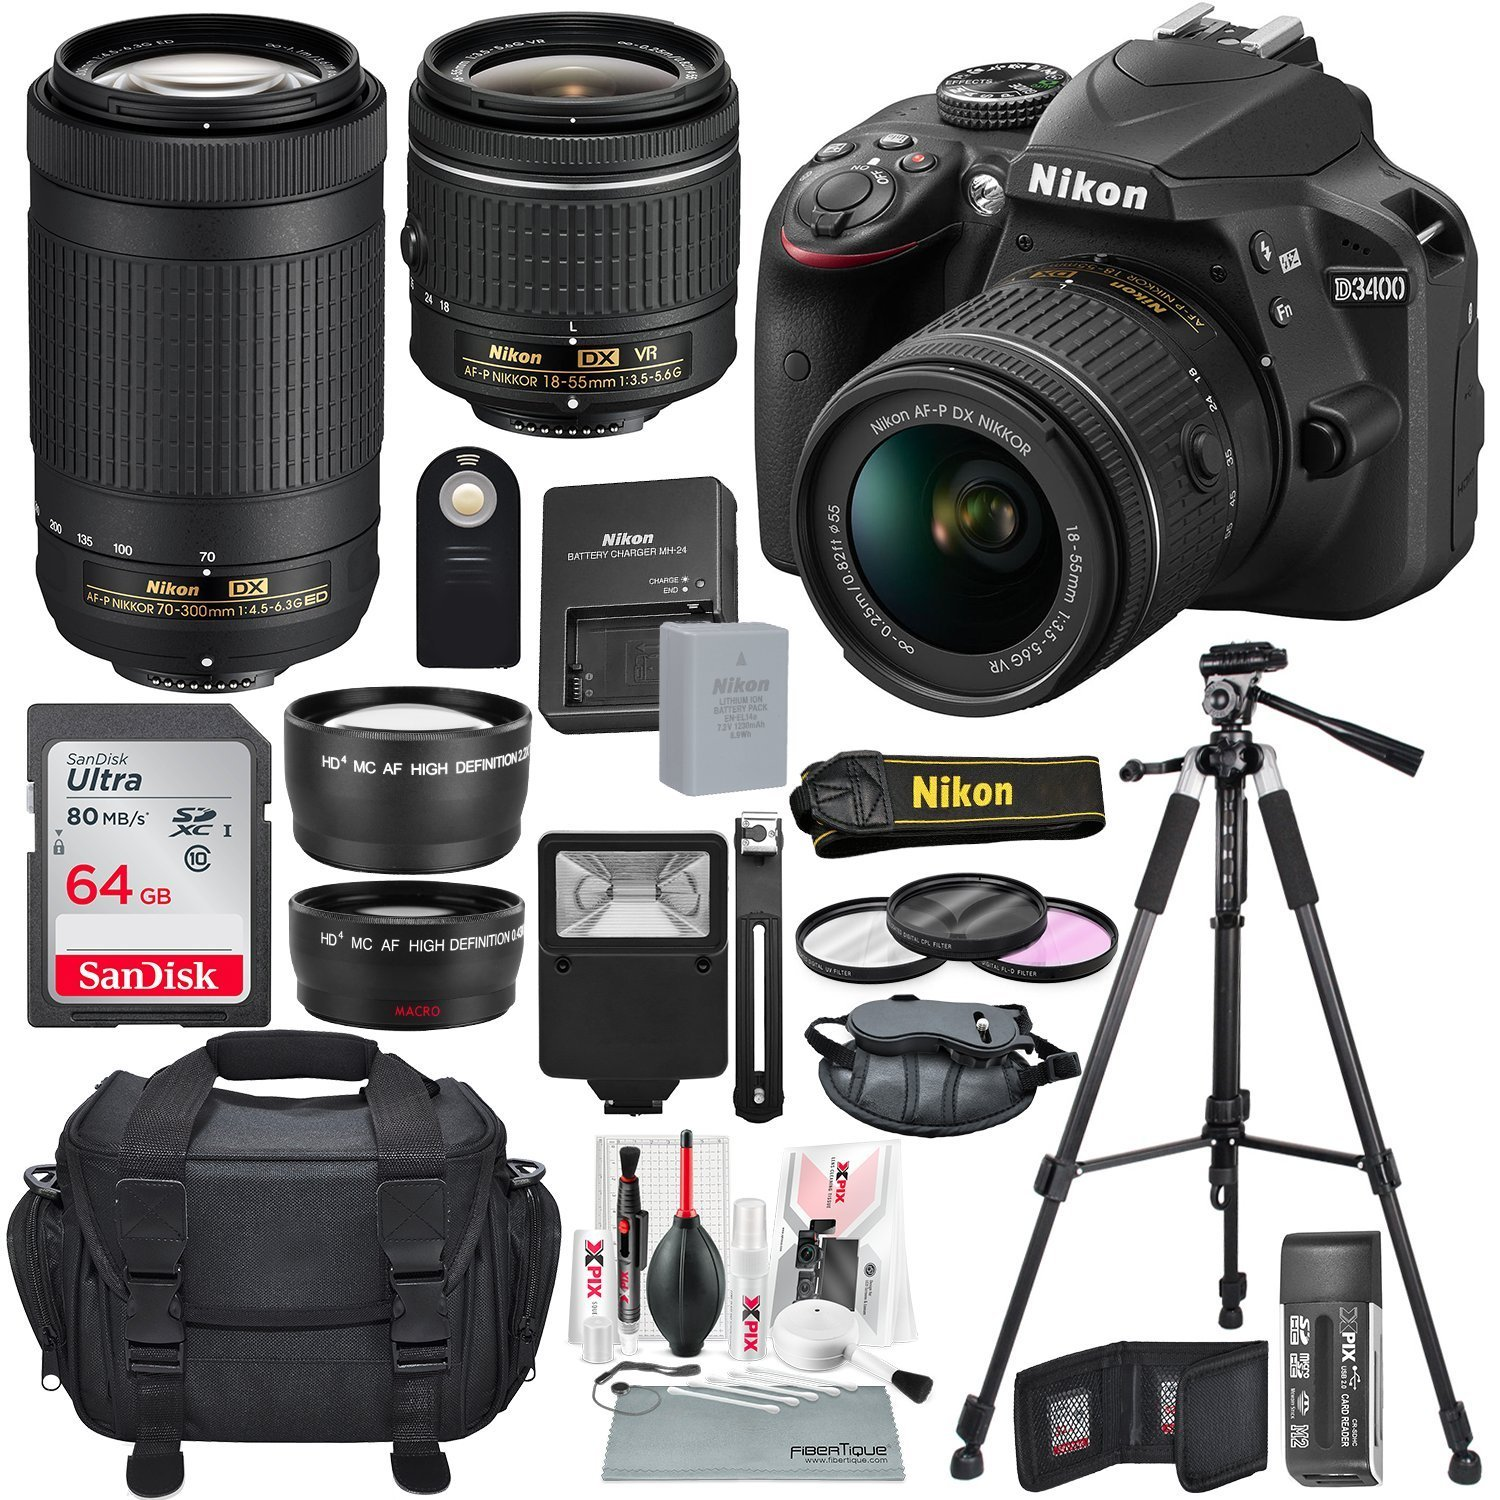 gift guide for him - DSLR camera + bundle - she got guts.jpg